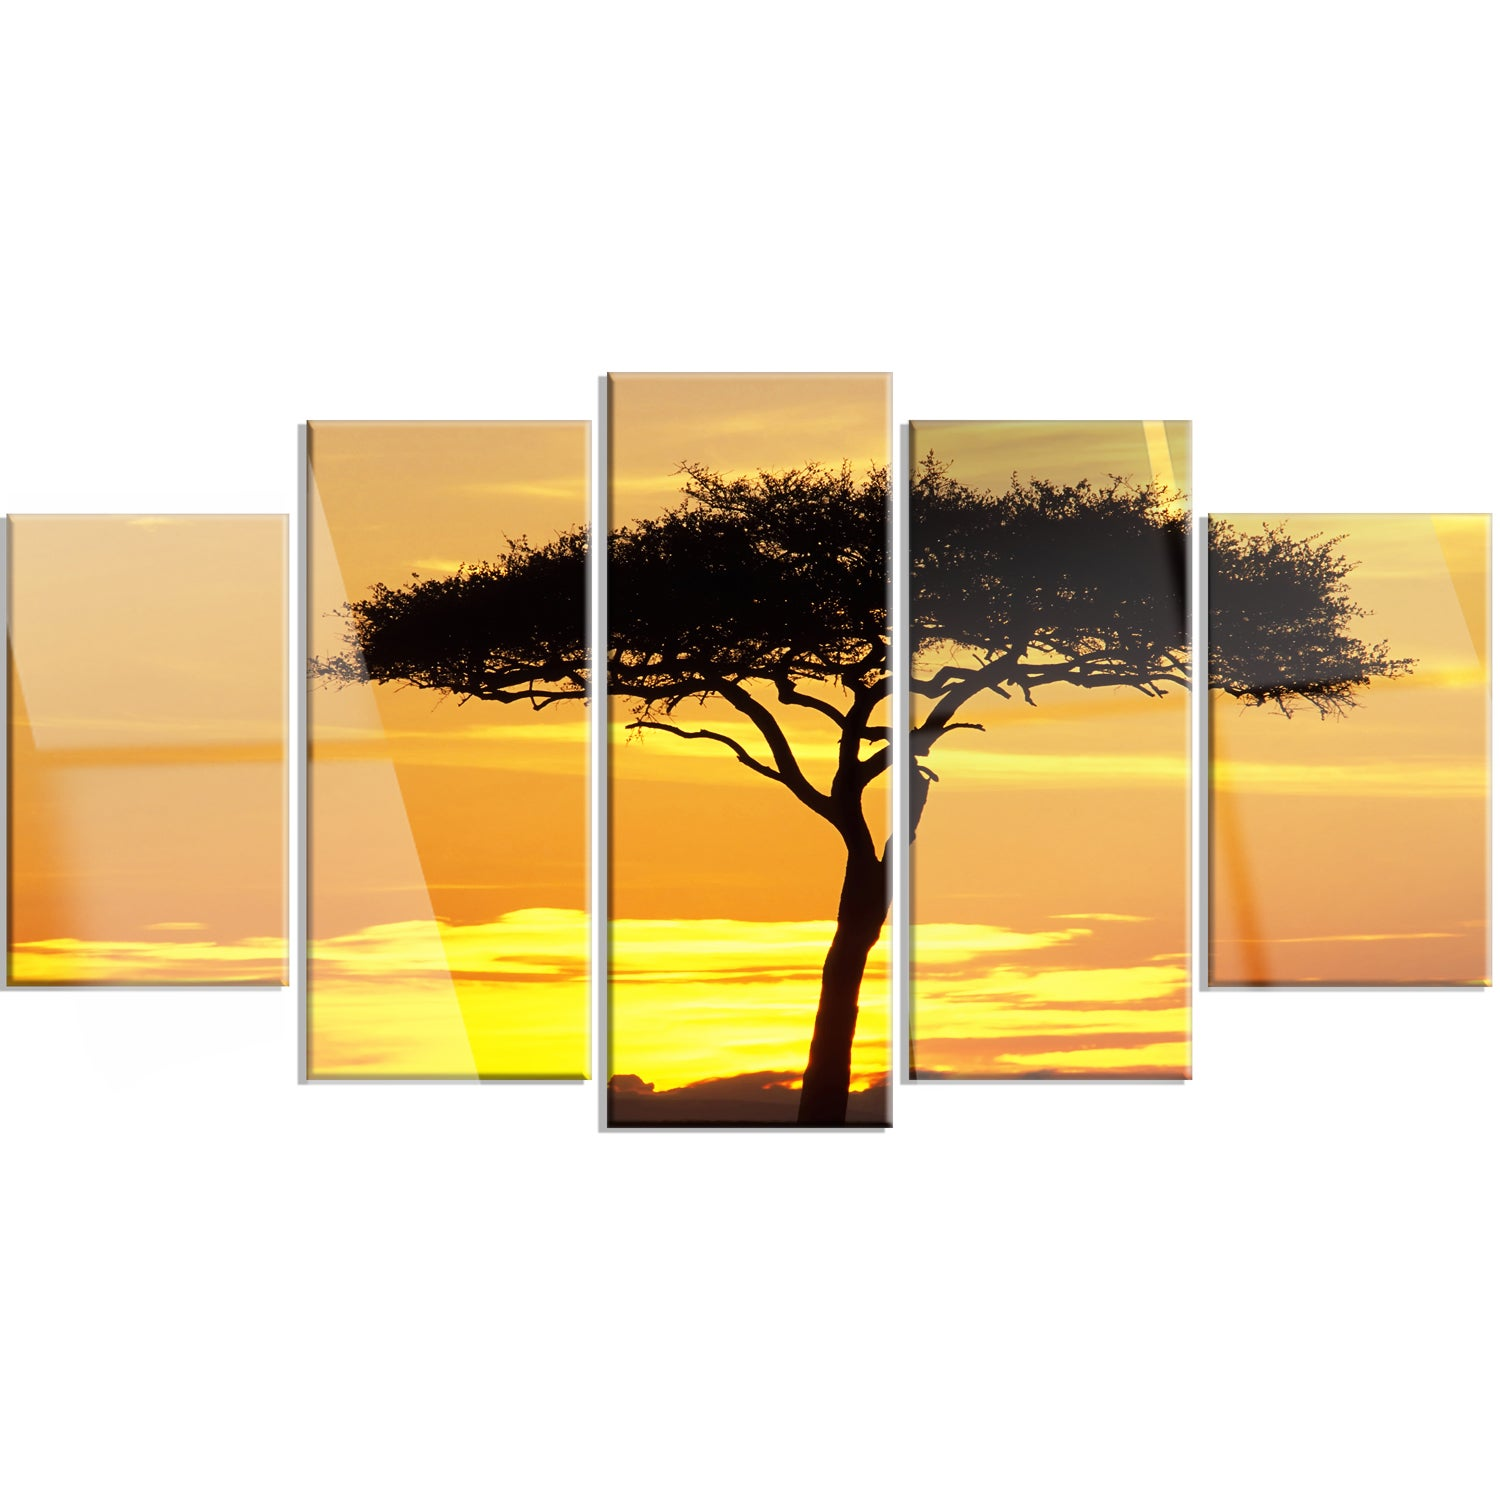 Fantastic Large Metal Wall Art Cheap Images - The Wall Art ...